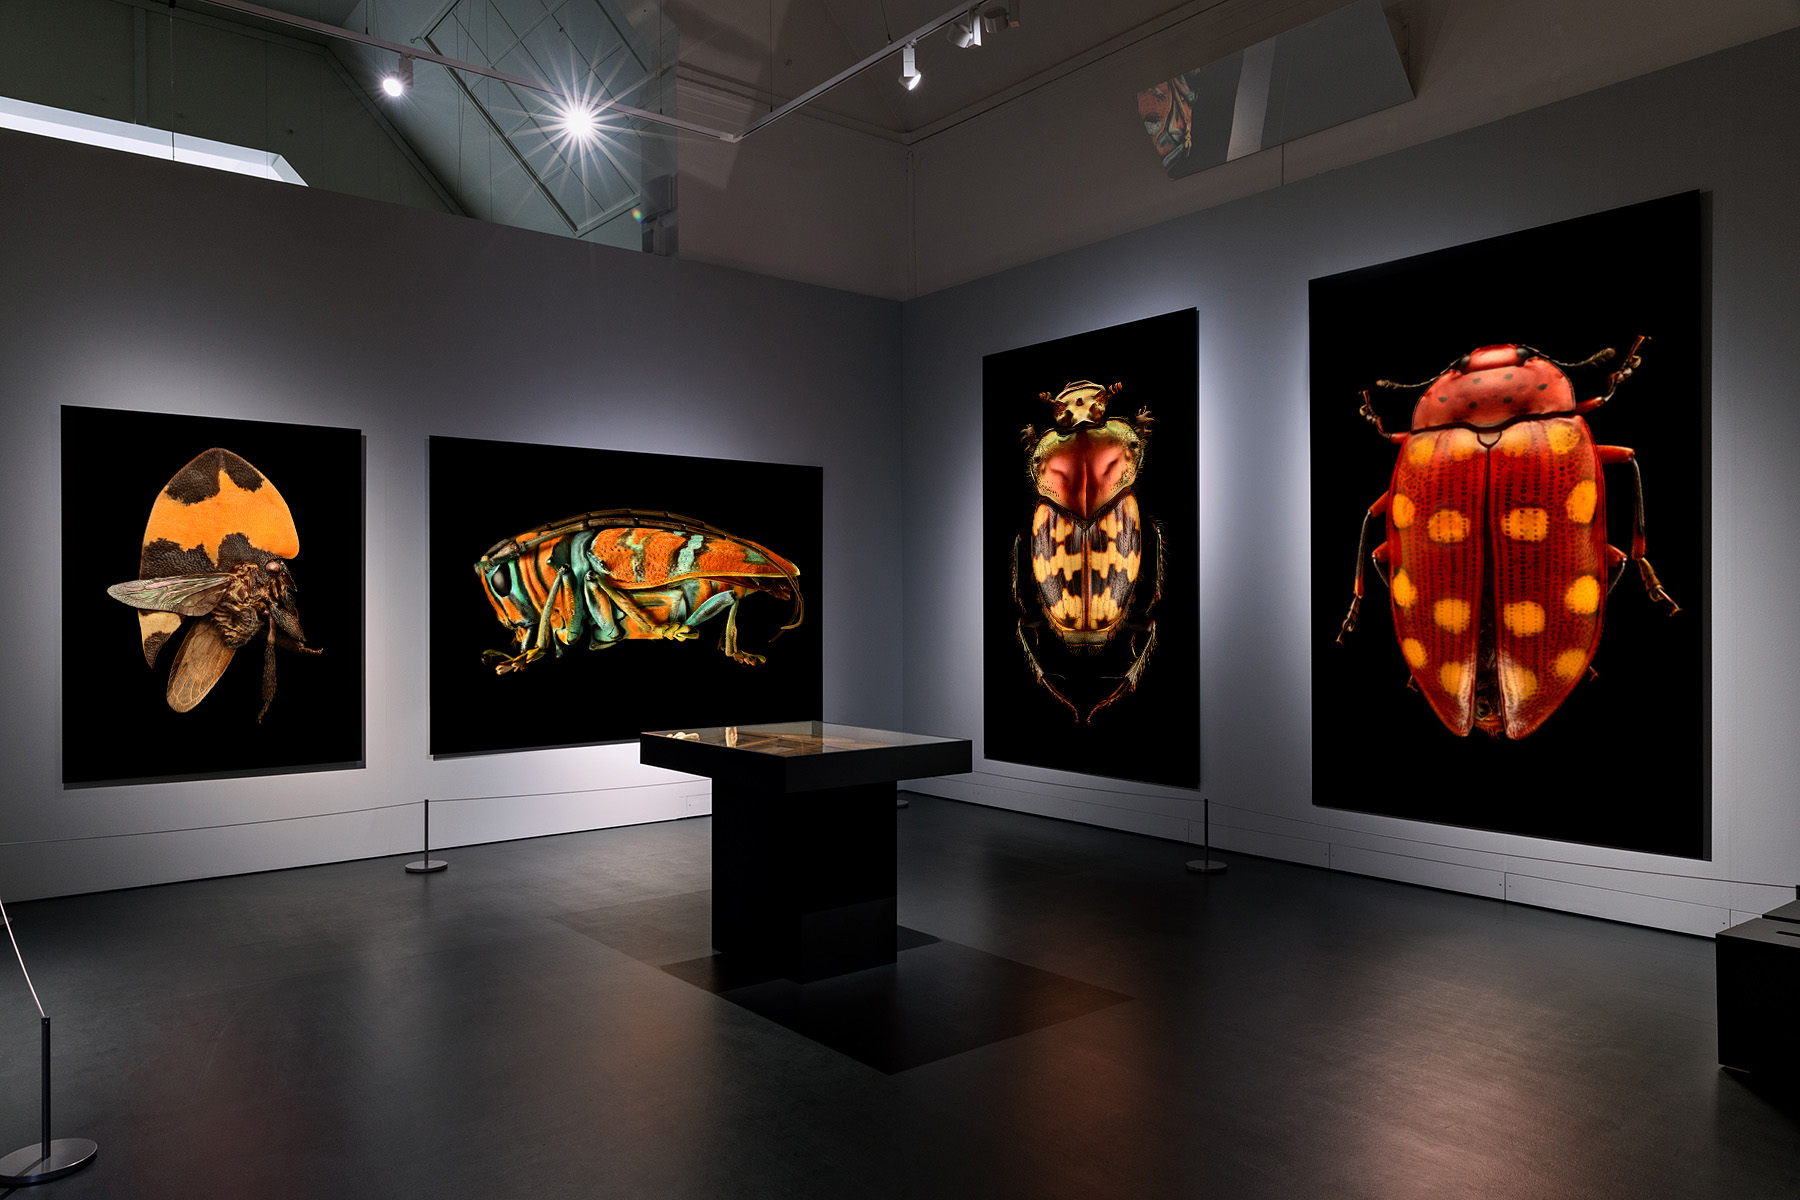 Display at the Naturhistorisches Museum Basel in Basel, Switzerland being shown through October 29, 2017.